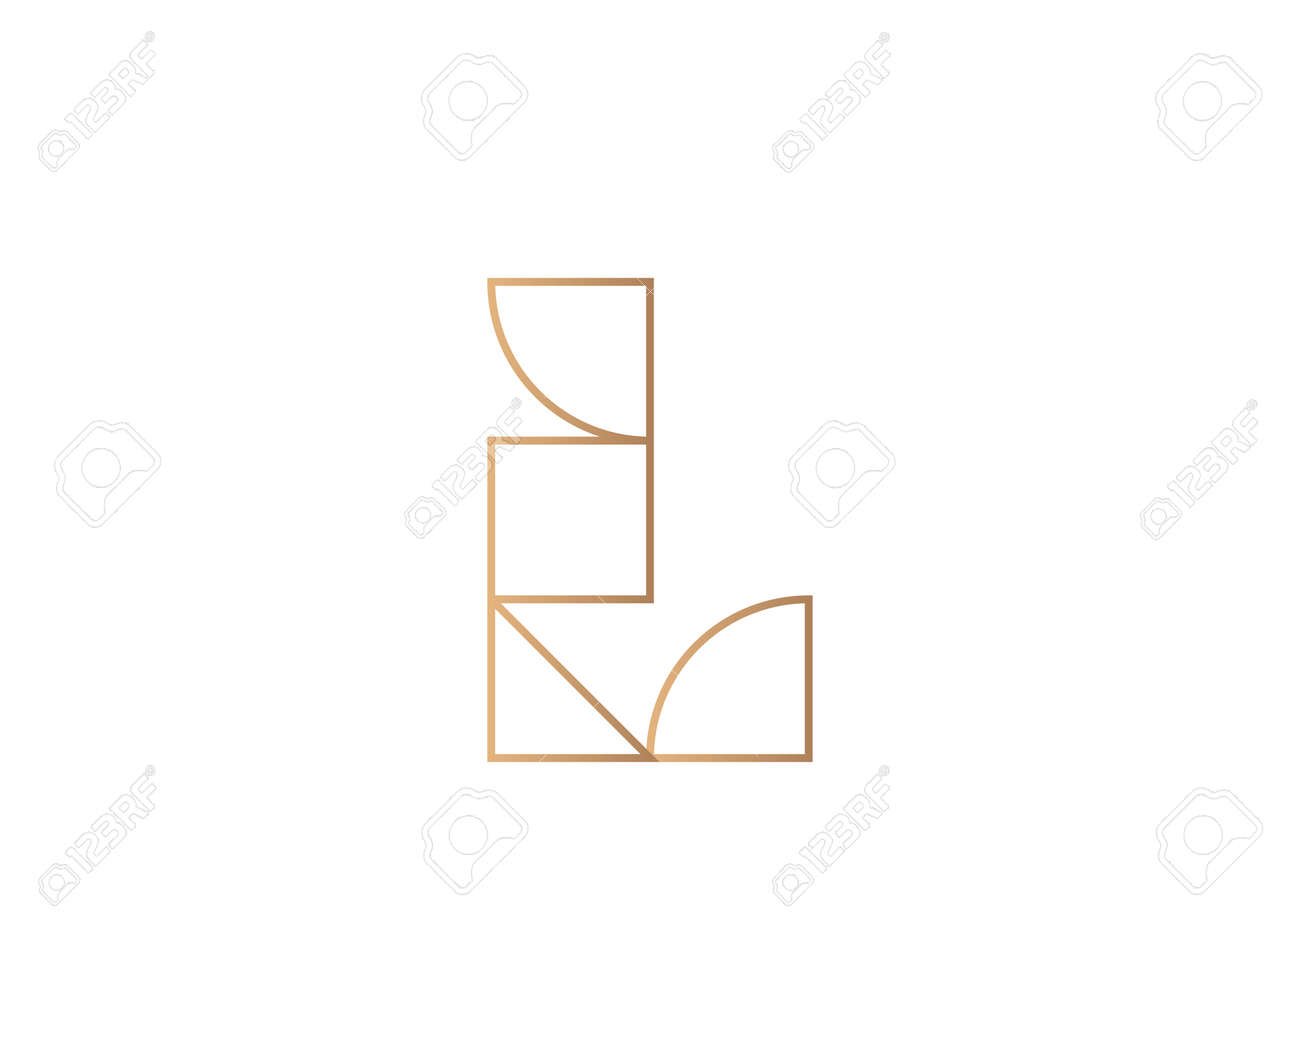 Abstract letter L logo design template on white background. Premium line gradient alphabet from geometric shapes emblem sign symbol mark logotype - 153265009